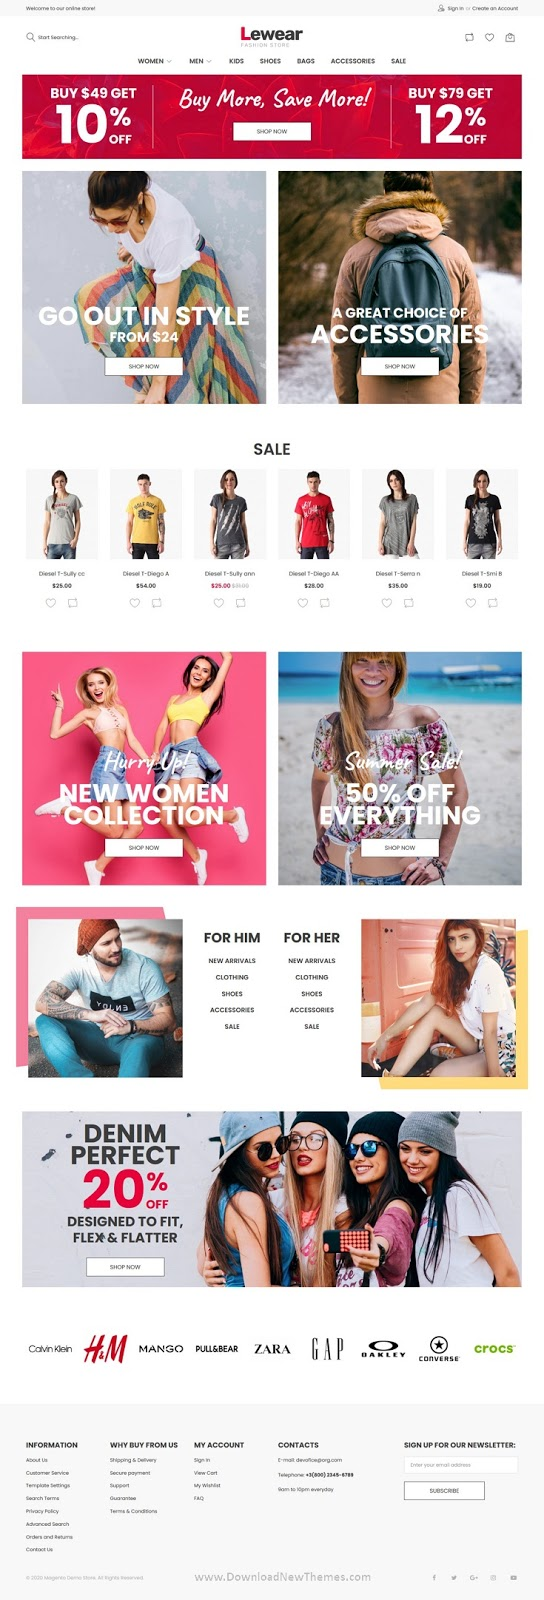 Premium Best Magento Theme for fashion store website